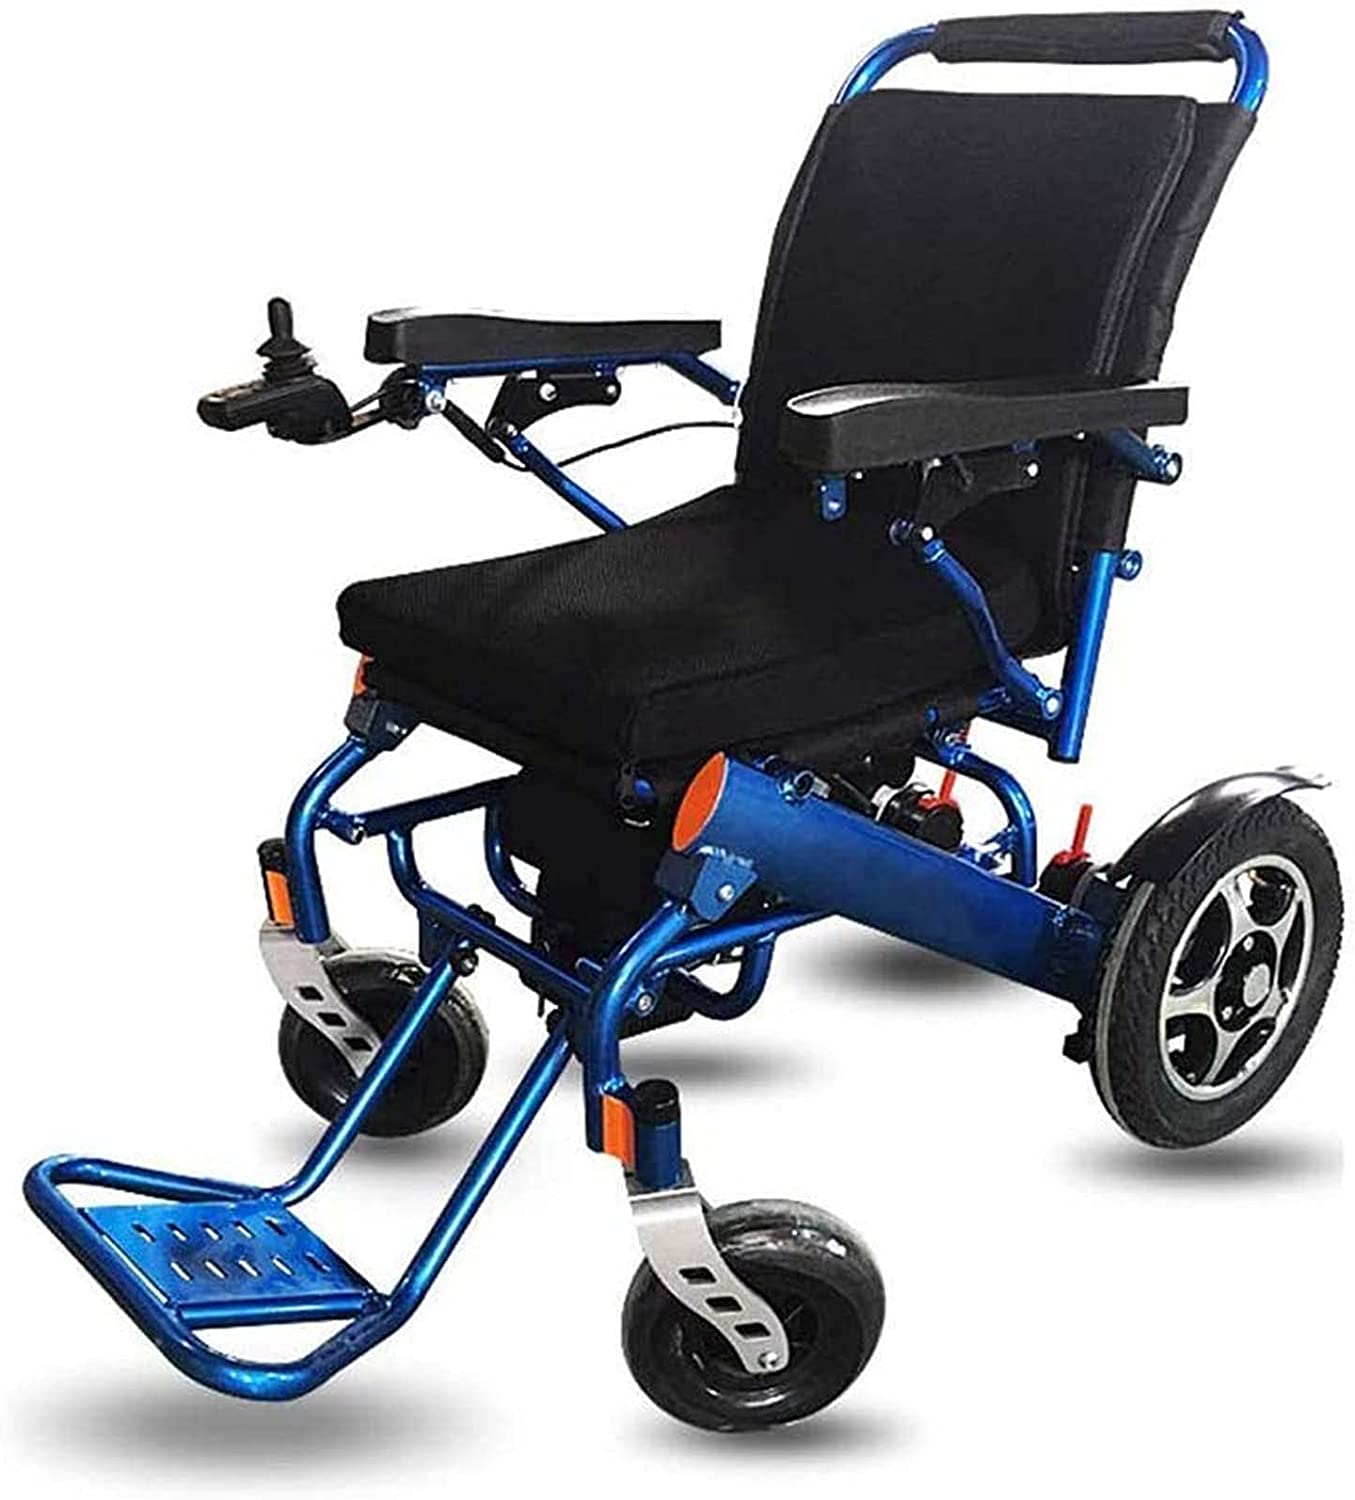 FC-LY Folding Lightweight Electric and Cash special 2021 model price Durable Wheelchair Strong